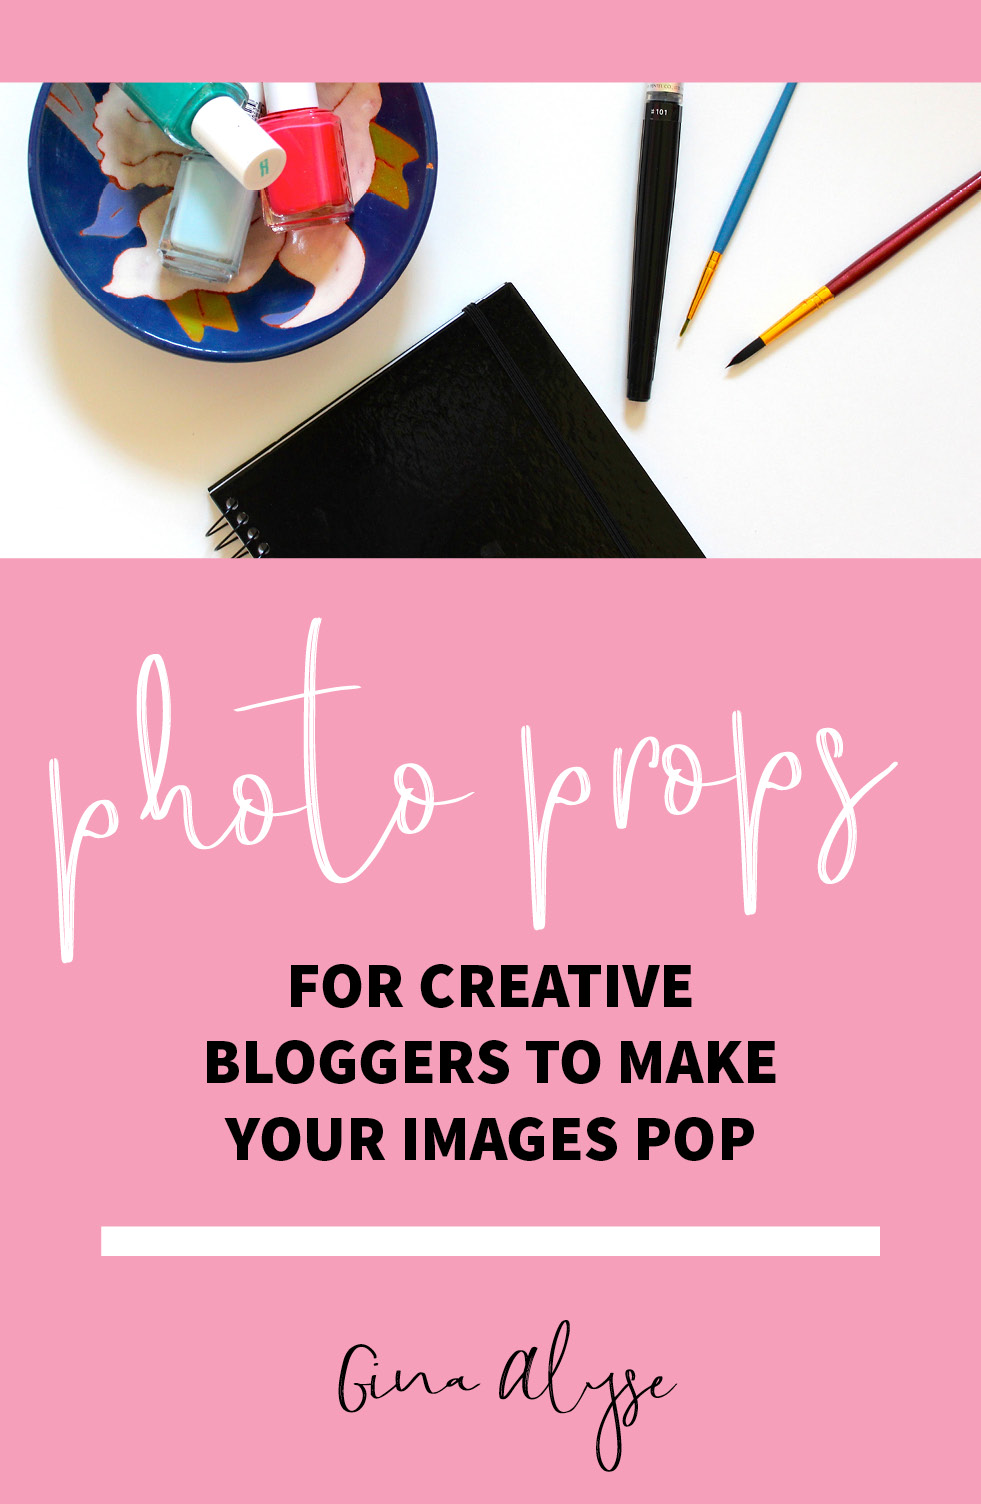 Photo Props for Creative Bloggers